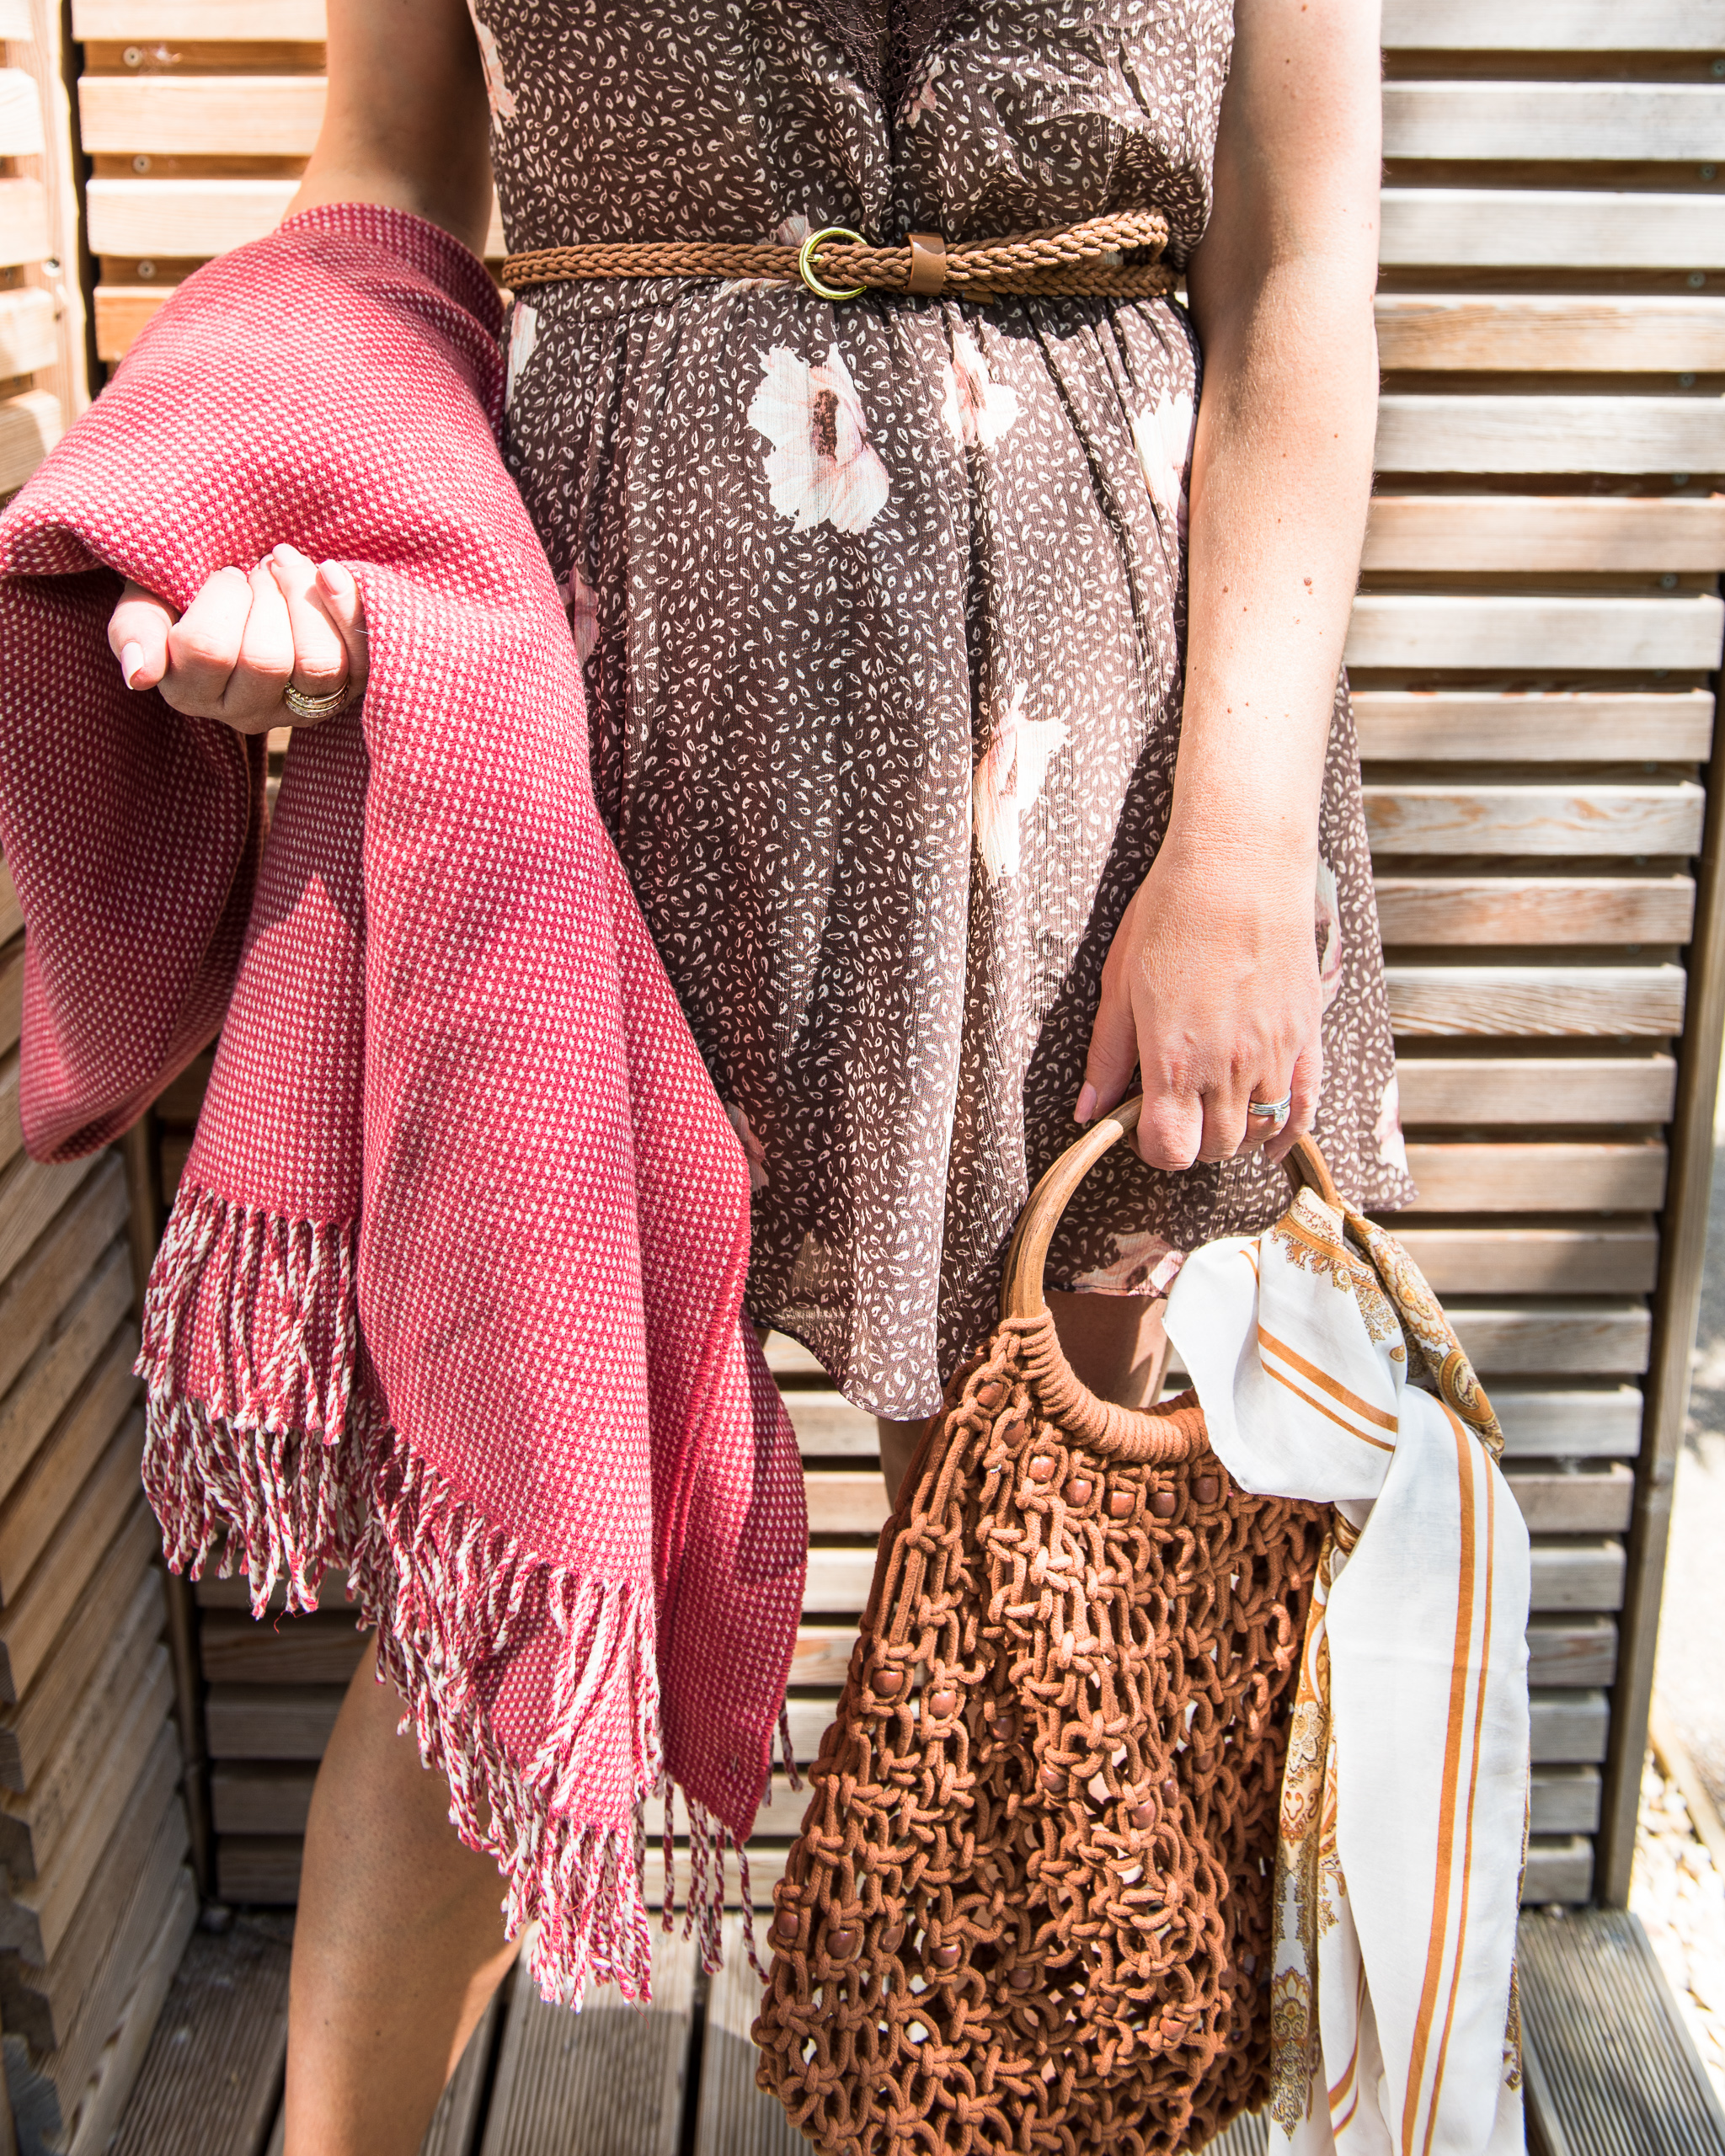 Brown and tan accessories